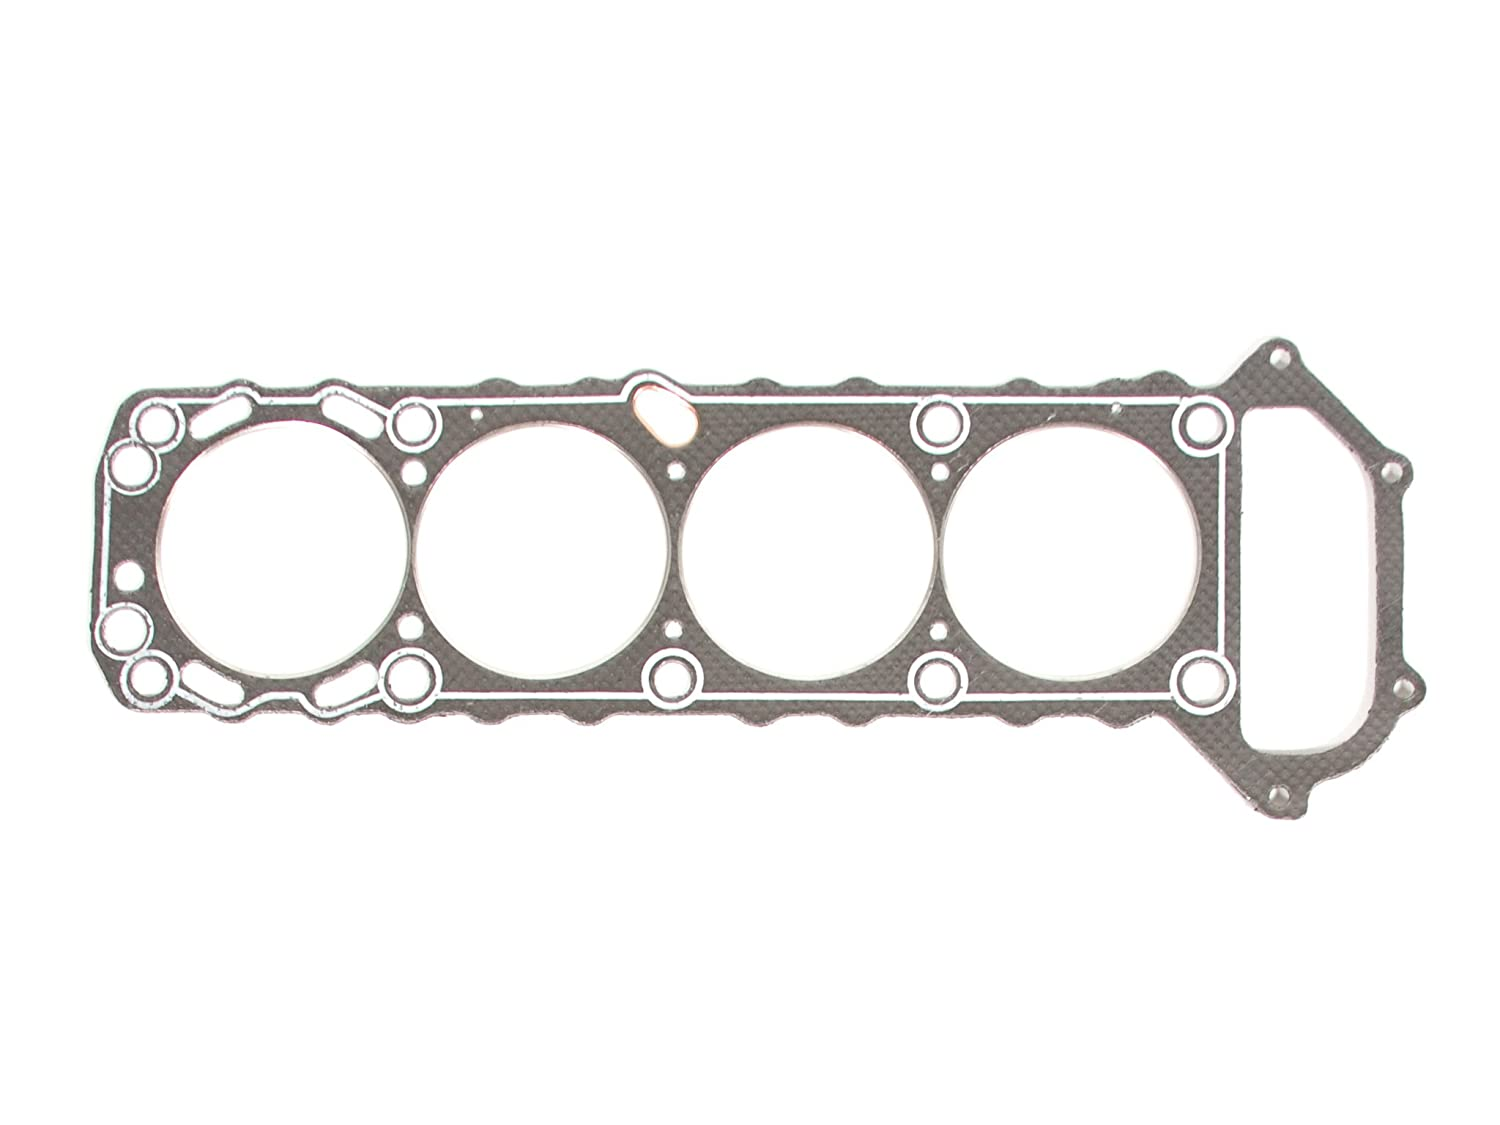 Evergreen HG3005 89-97 Nissan Pick Up 240SX 2.4L SOHC KA24E Cylinder Head Gasket fast shipping r165 cylinder head spare parts intake valve gasket nozzel flywheel nut suit for changchai changfa chinese brand